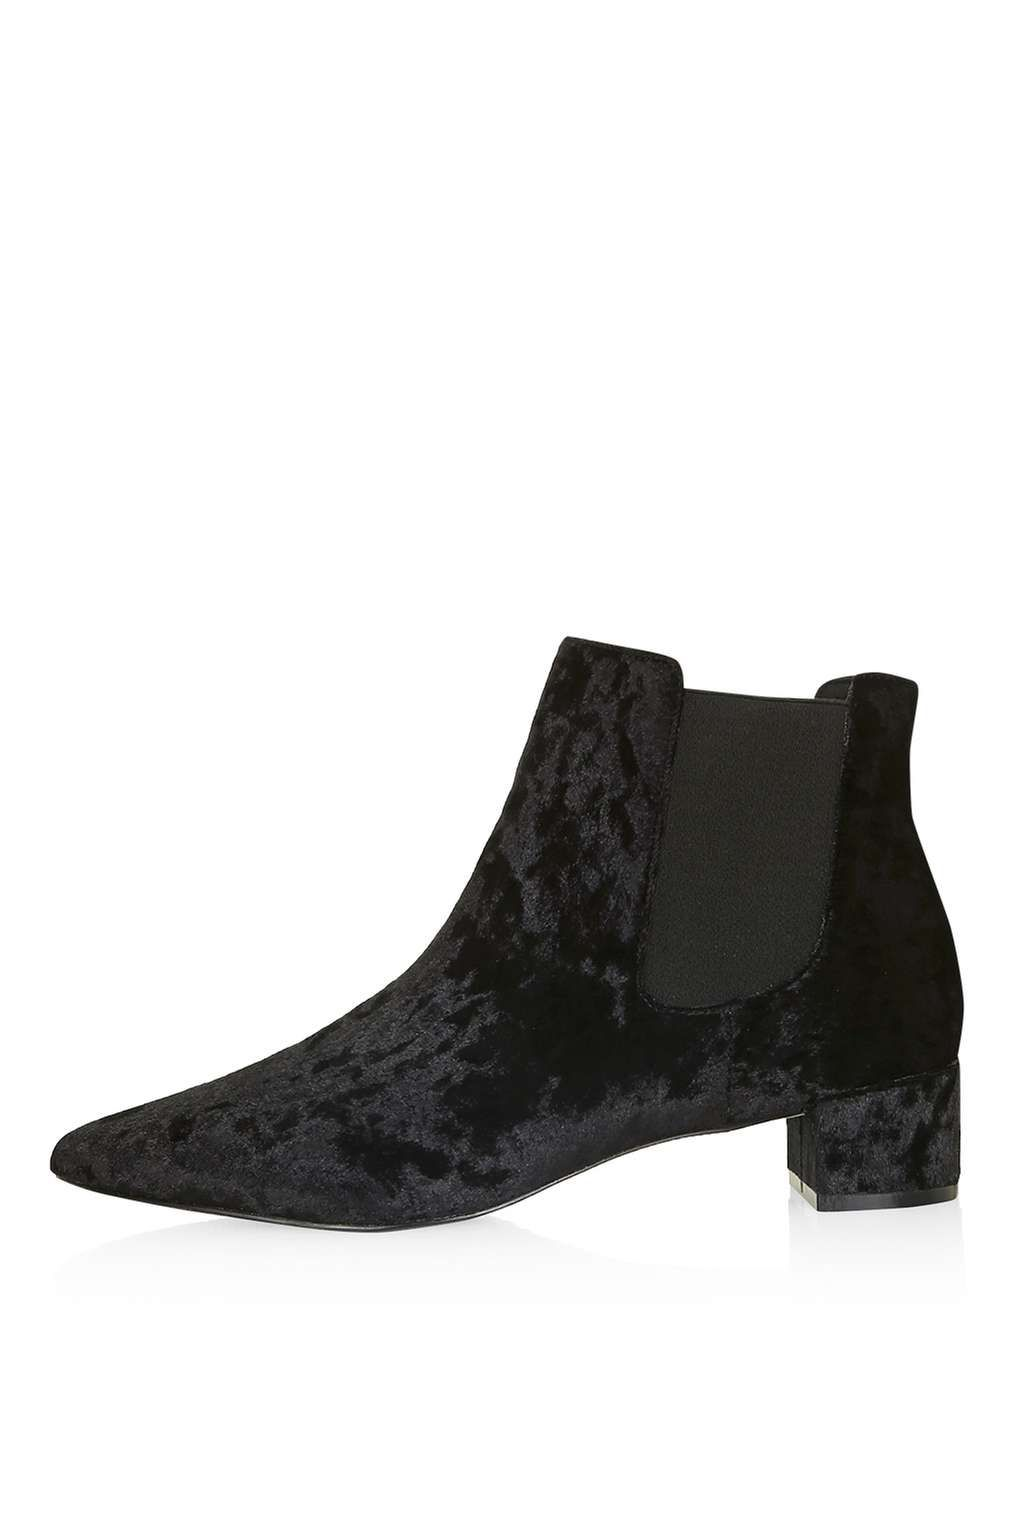 KRAZY Pointed Boot Boots, Fashion shoes, Crazy shoes